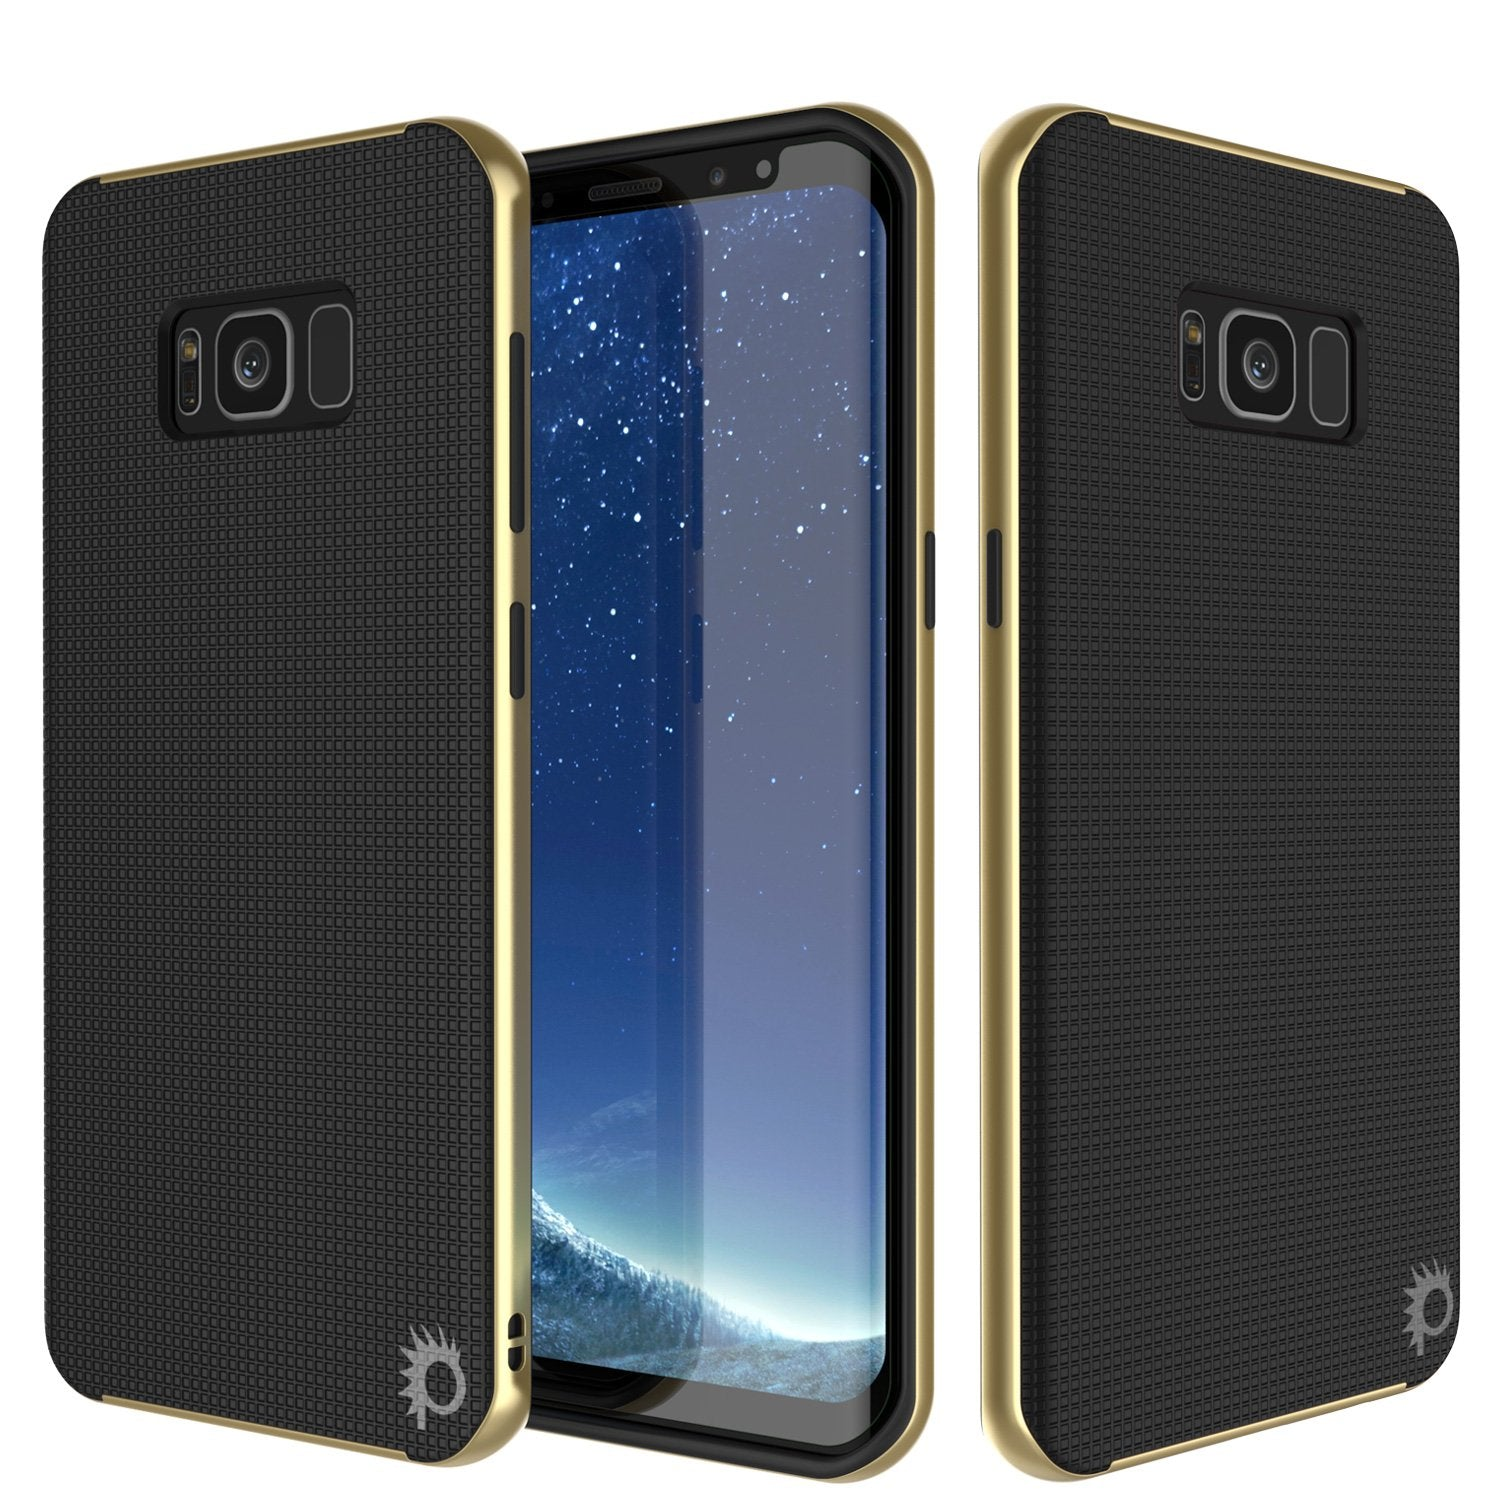 Galaxy S8 PLUS Case, PunkCase [Stealth Series] Hybrid 3-Piece Shockproof Dual Layer Cover [Non-Slip] [Soft TPU + PC Bumper] with PUNKSHIELD Screen Protector for Samsung S8+ [Gold]